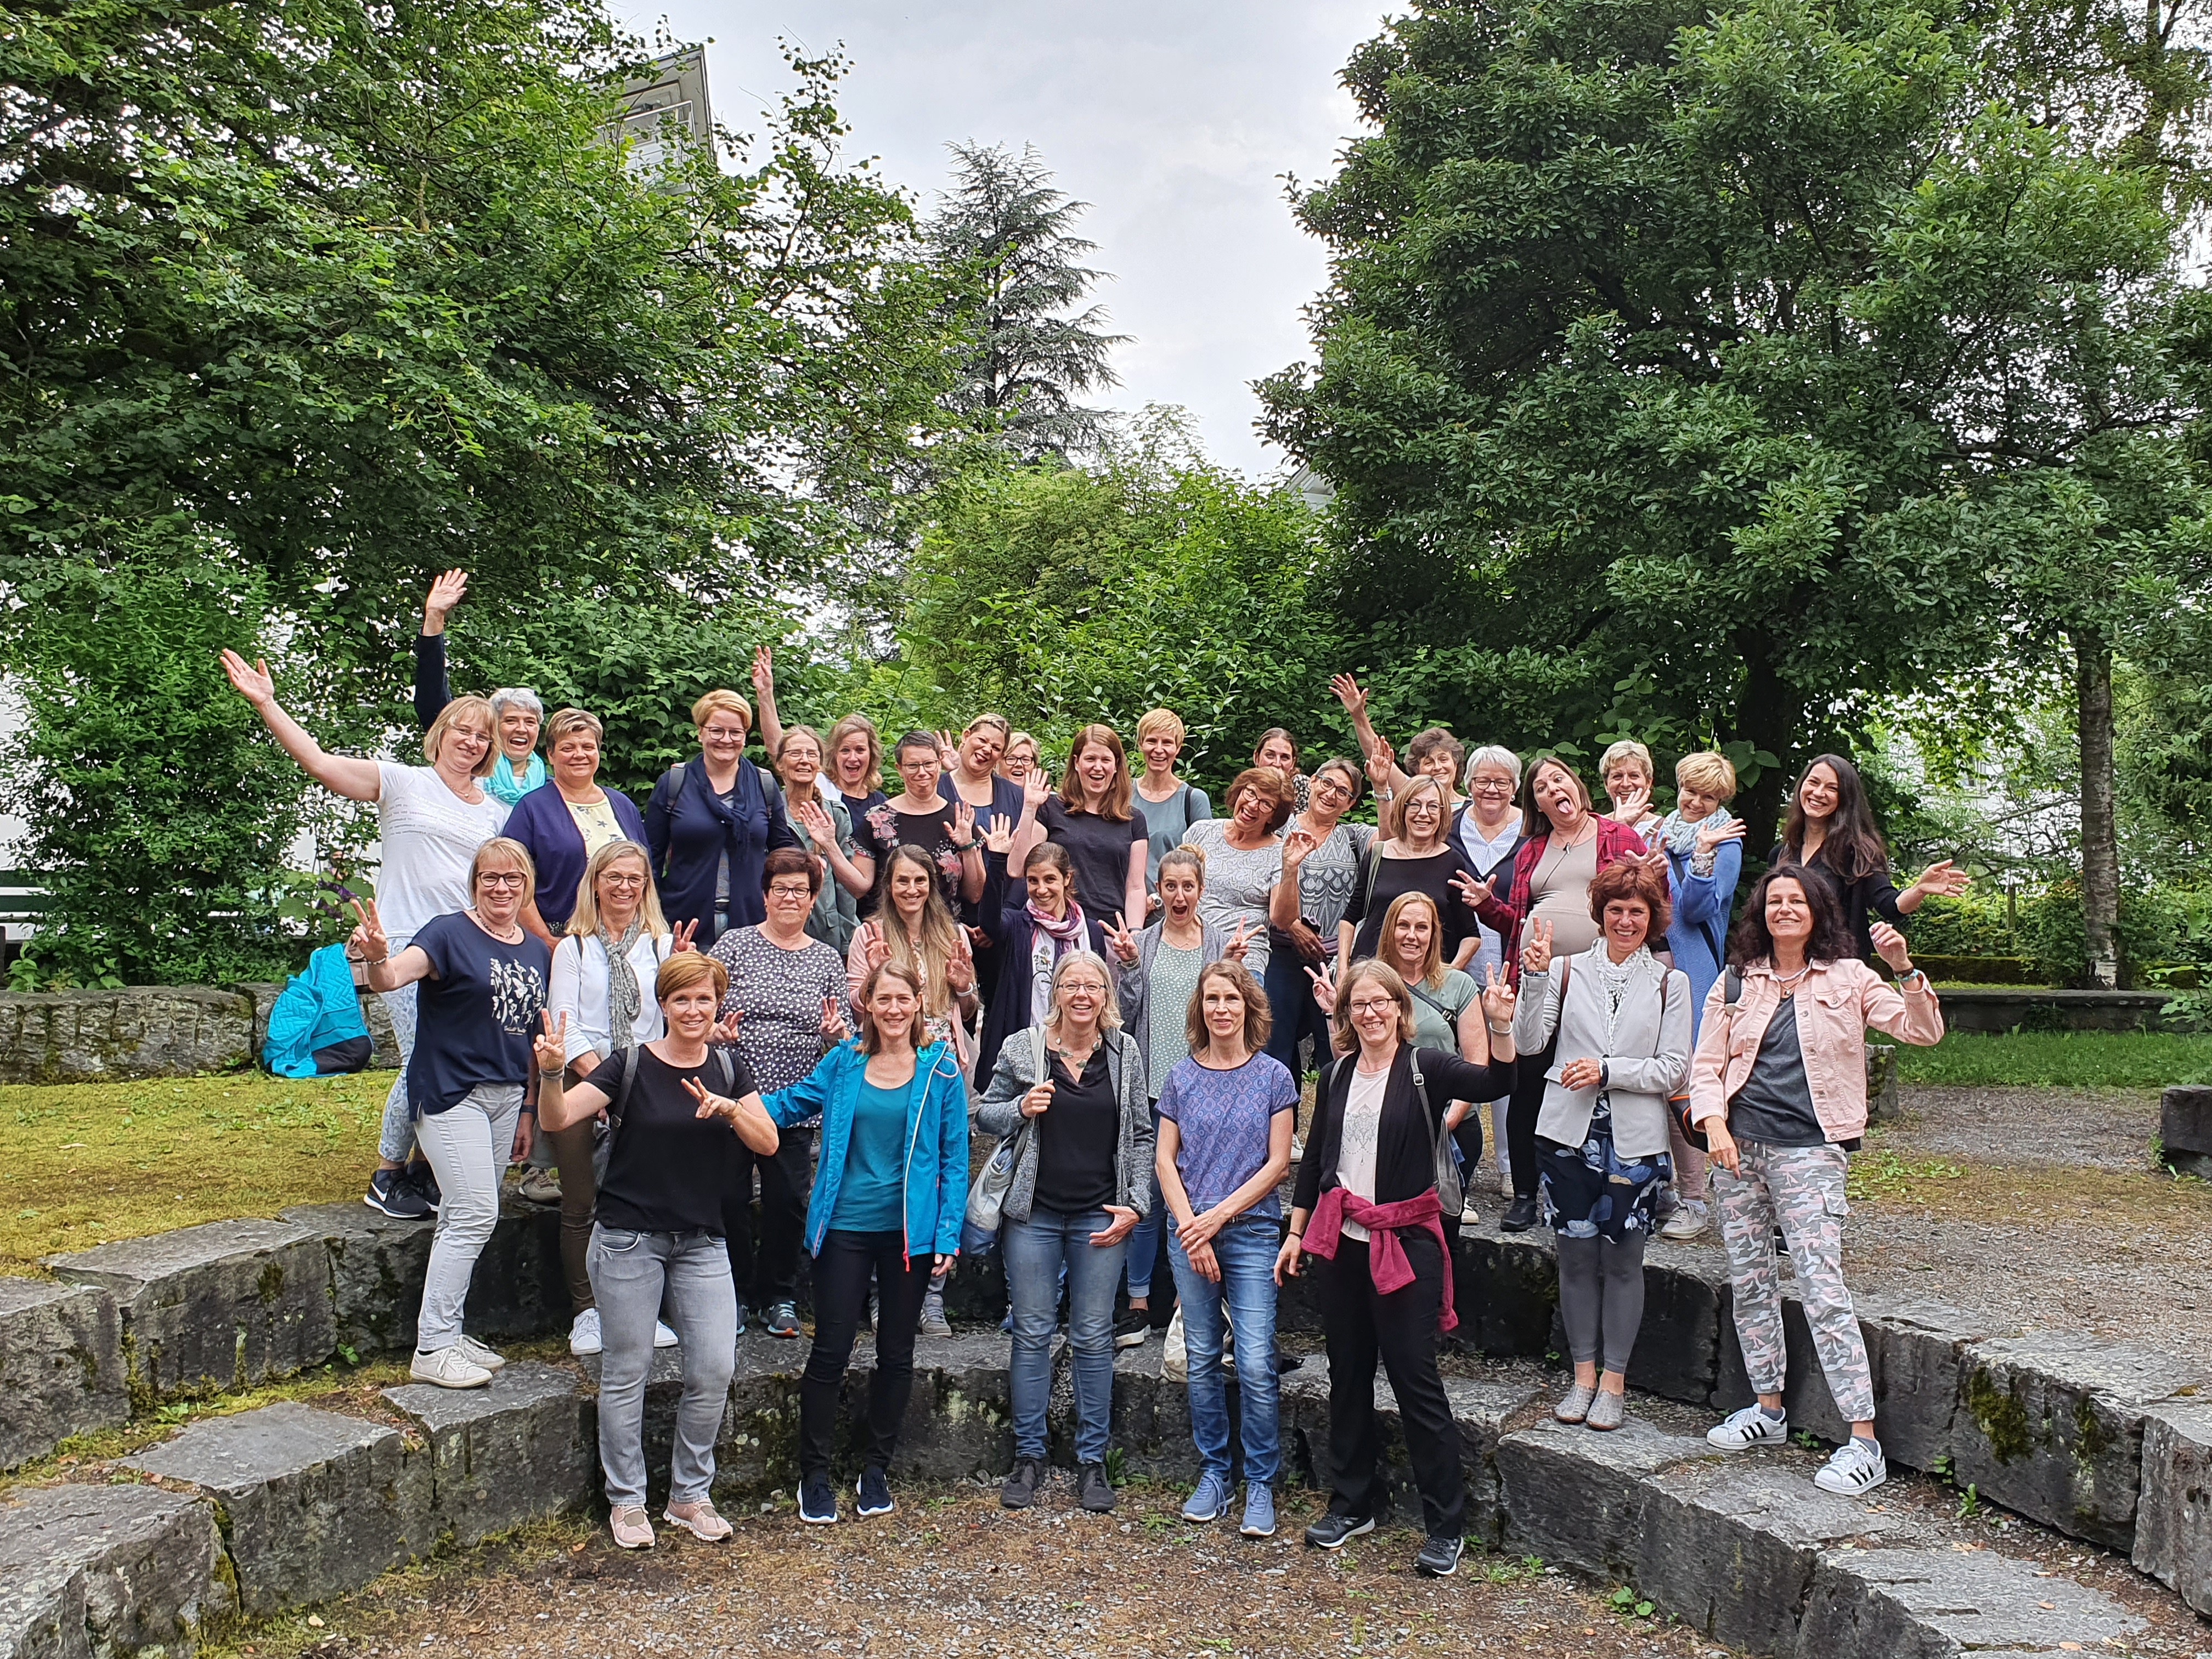 Foodtour Ibach 25.06.2021